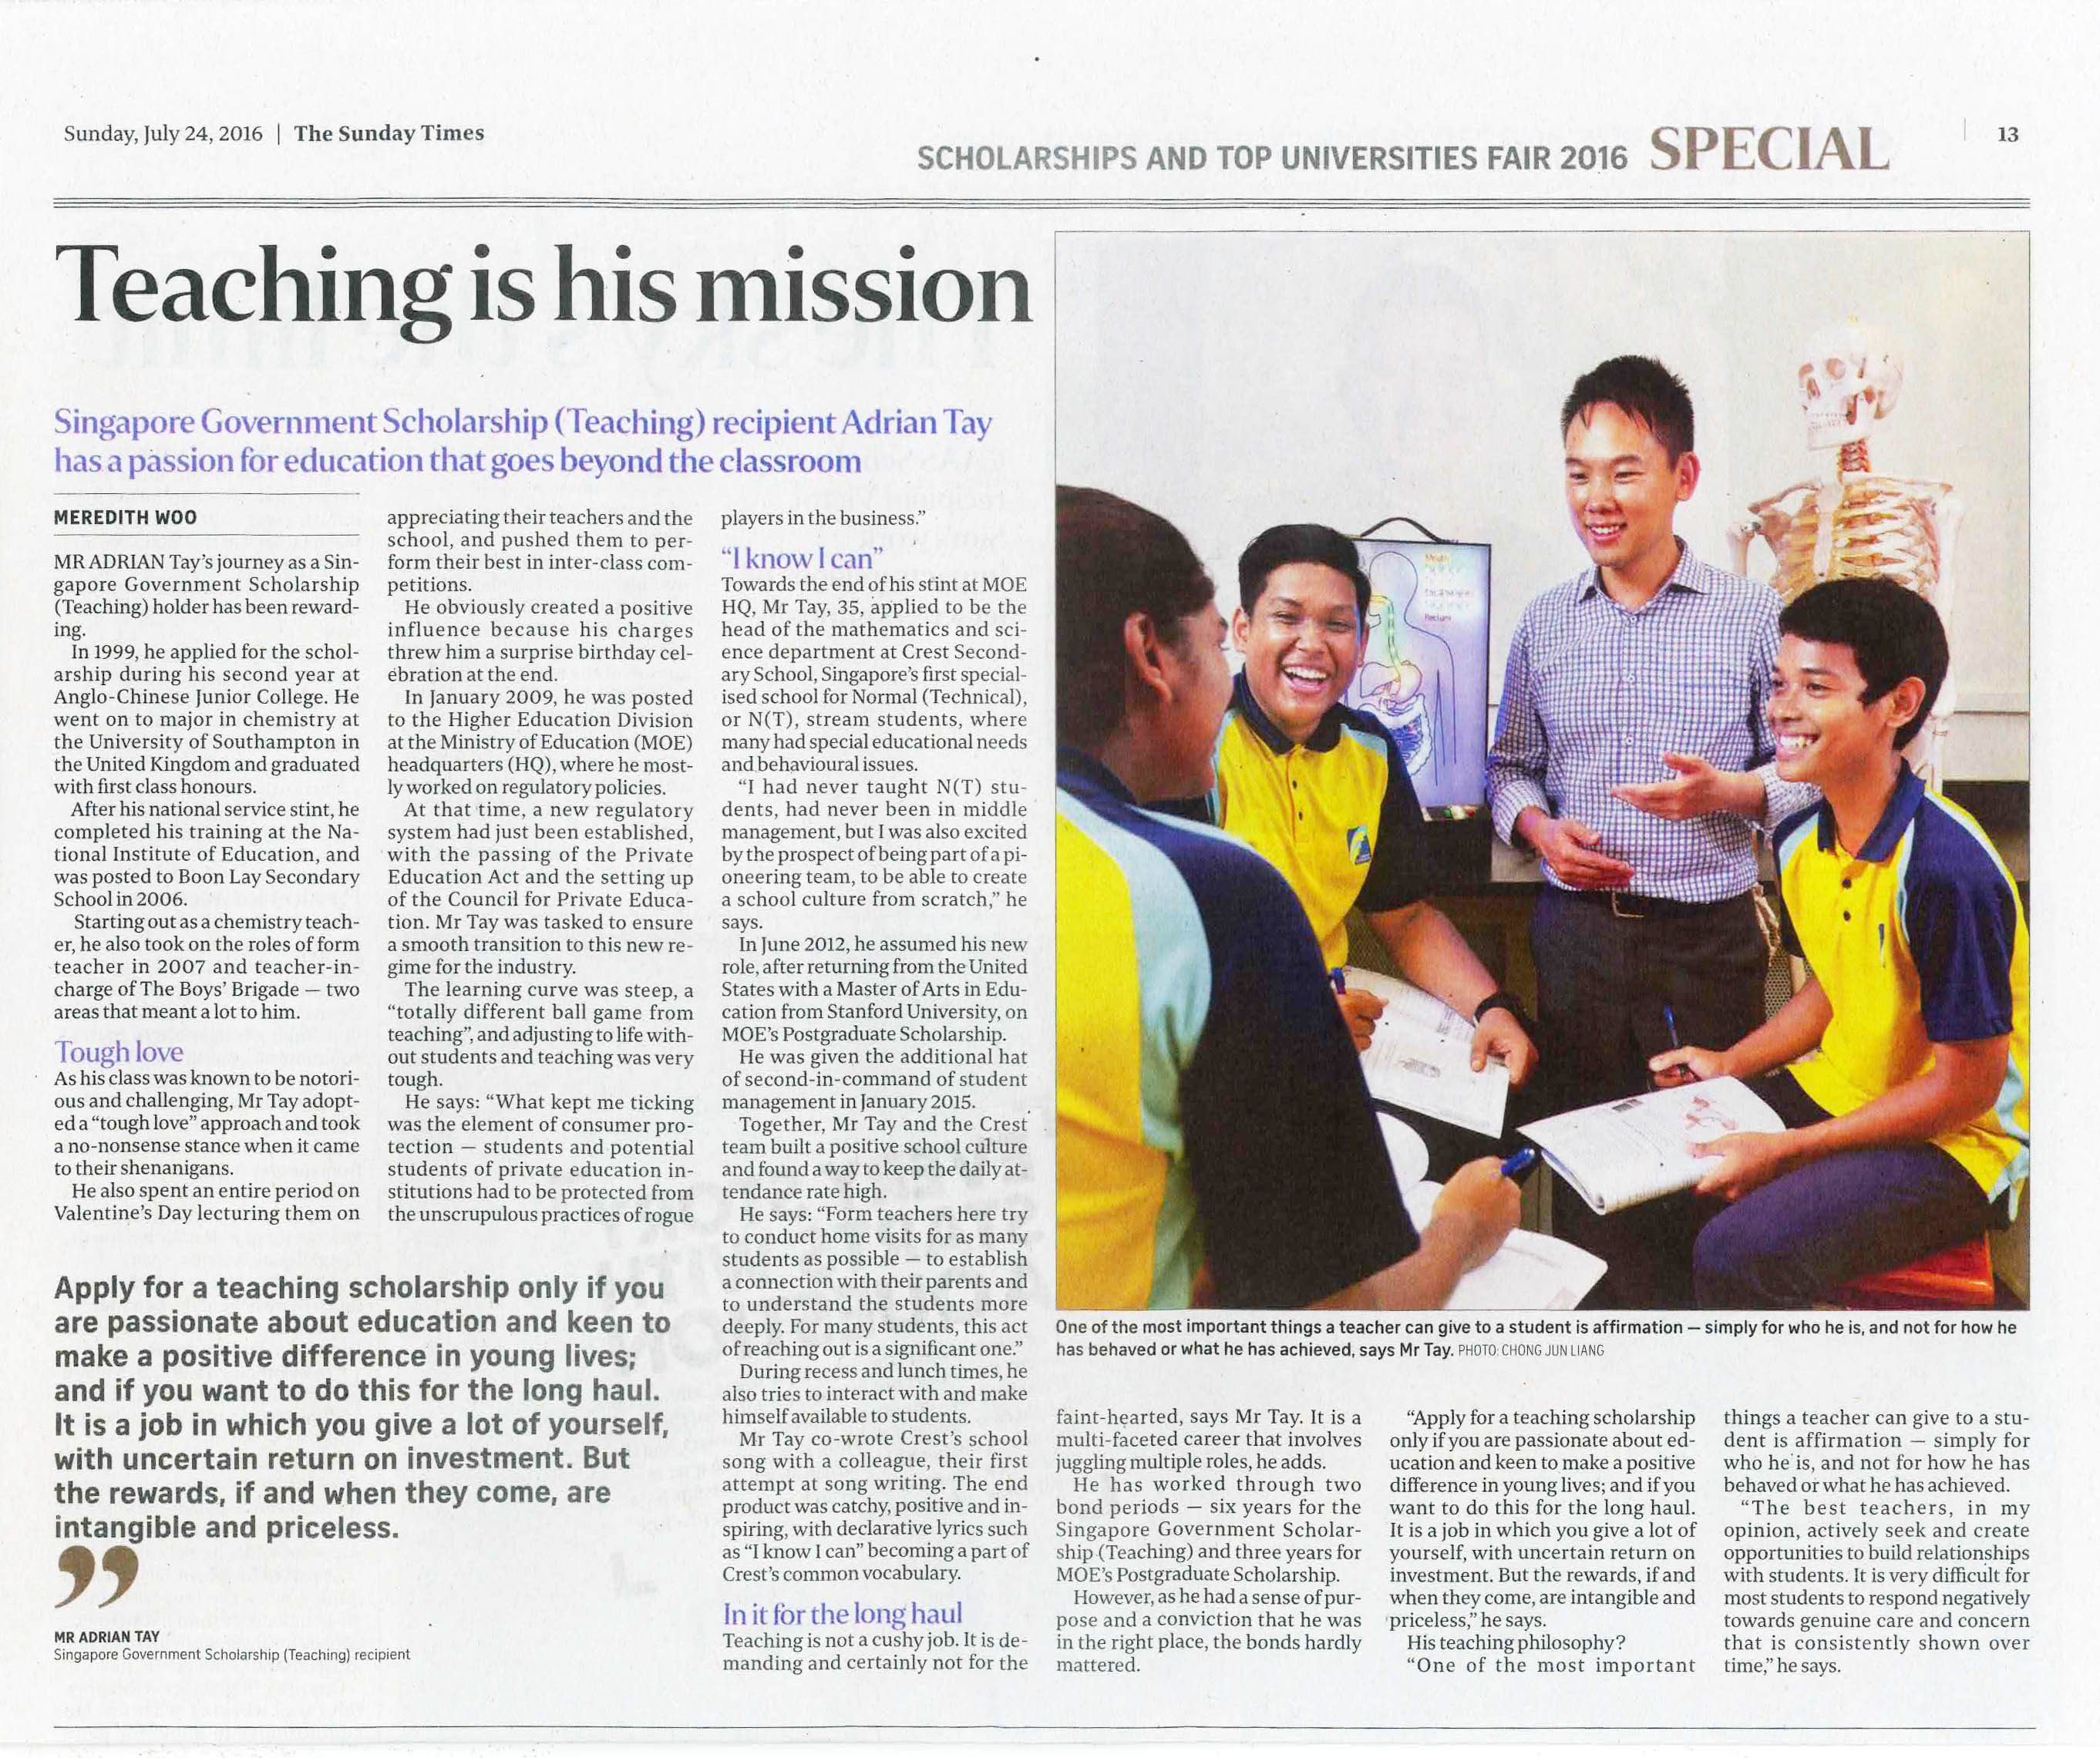 TheSundayTimes ST Scholarships Fair Supplement.jpg